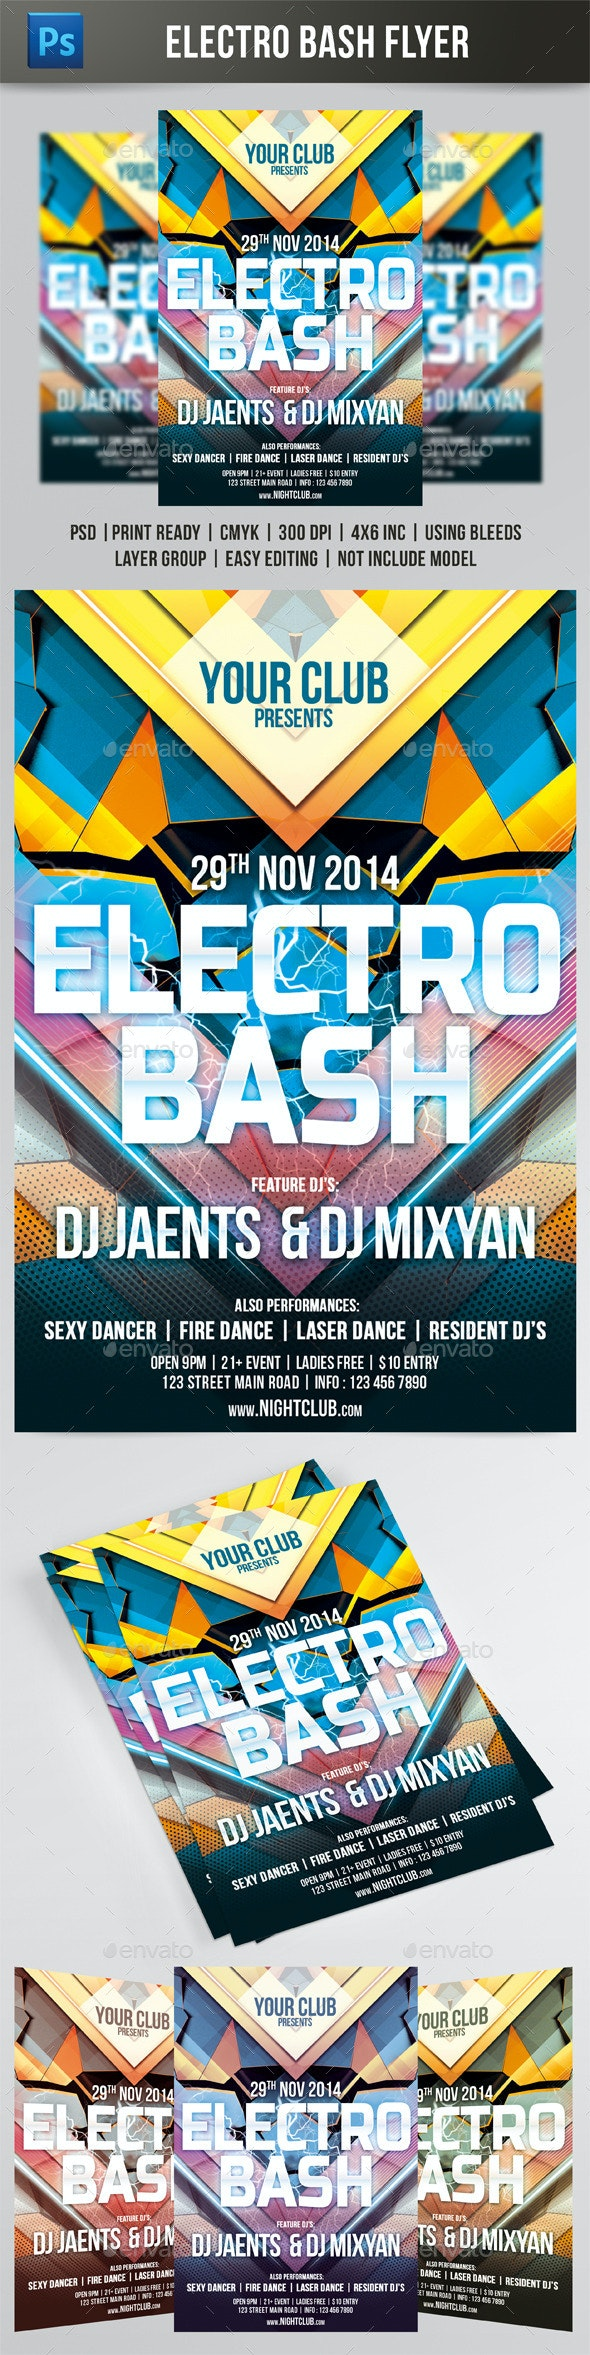 Electro Bash Flyer  - Events Flyers